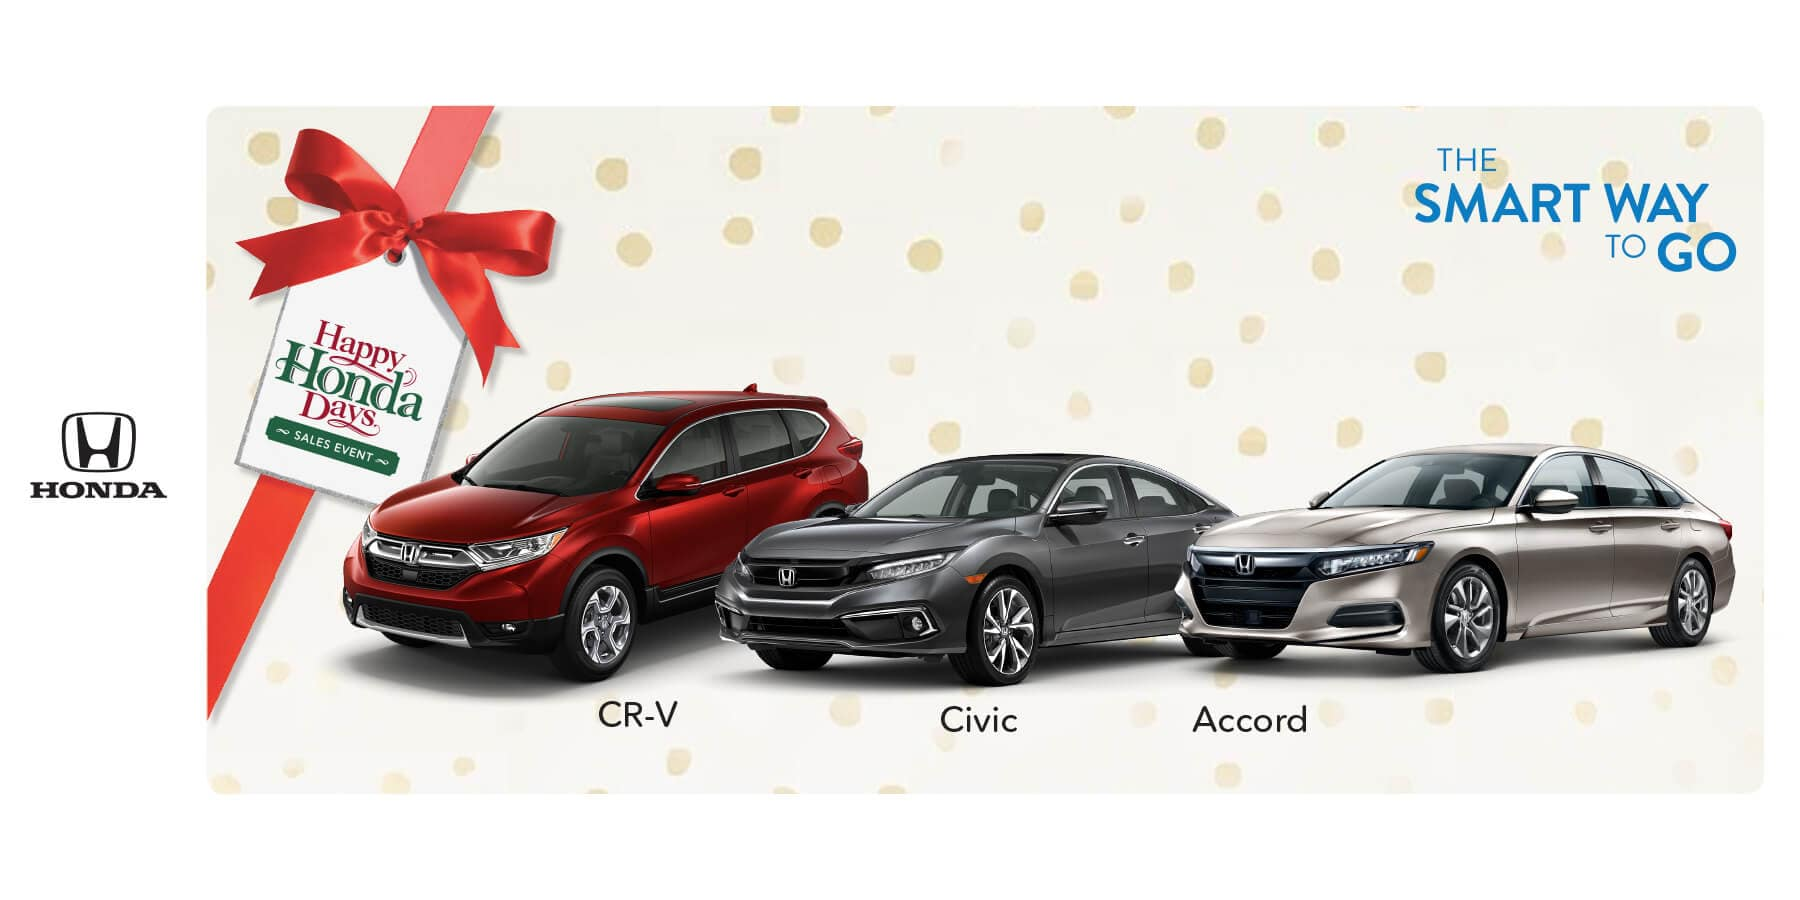 Happy Honda Days Sales Event Detroit Area Honda Dealers HP Slide